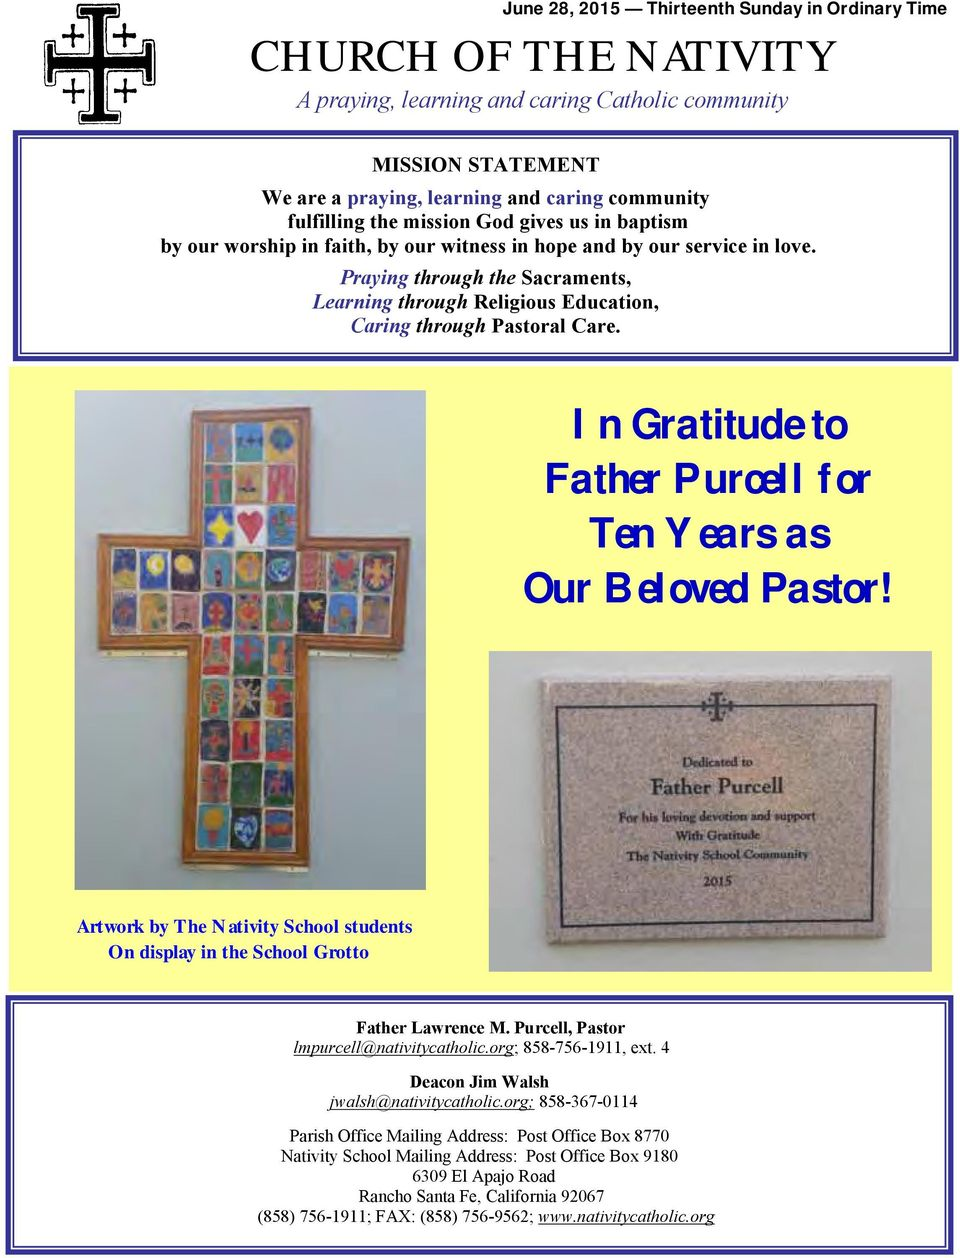 Praying through the Sacraments, Learning through Religious Education, Caring through Pastoral Care. In Gratitude to Father Purcell for Ten Years as Our Beloved Pastor!